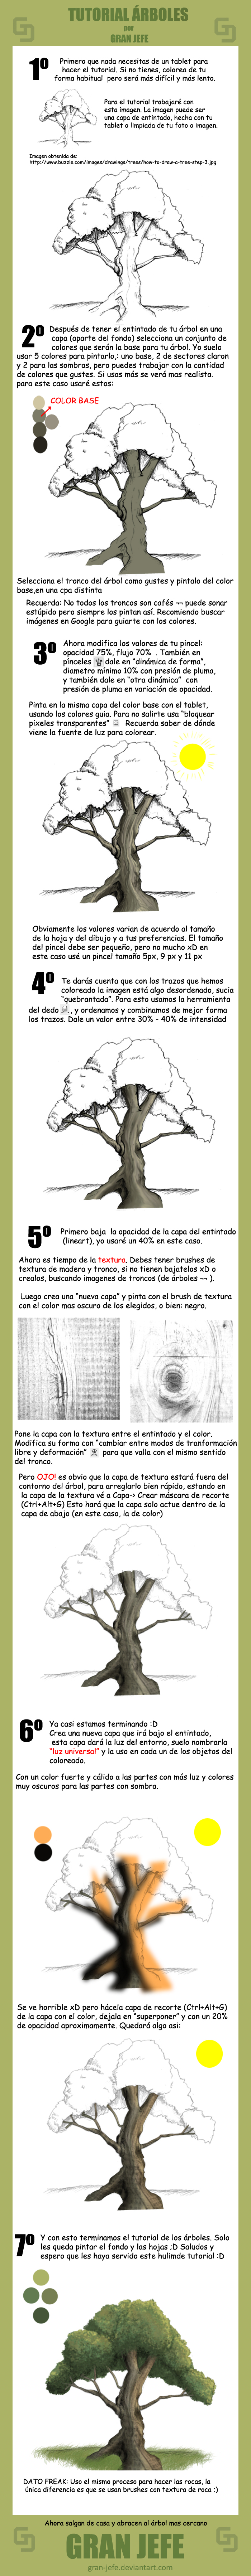 Tutorial Arboles by gran-jefe